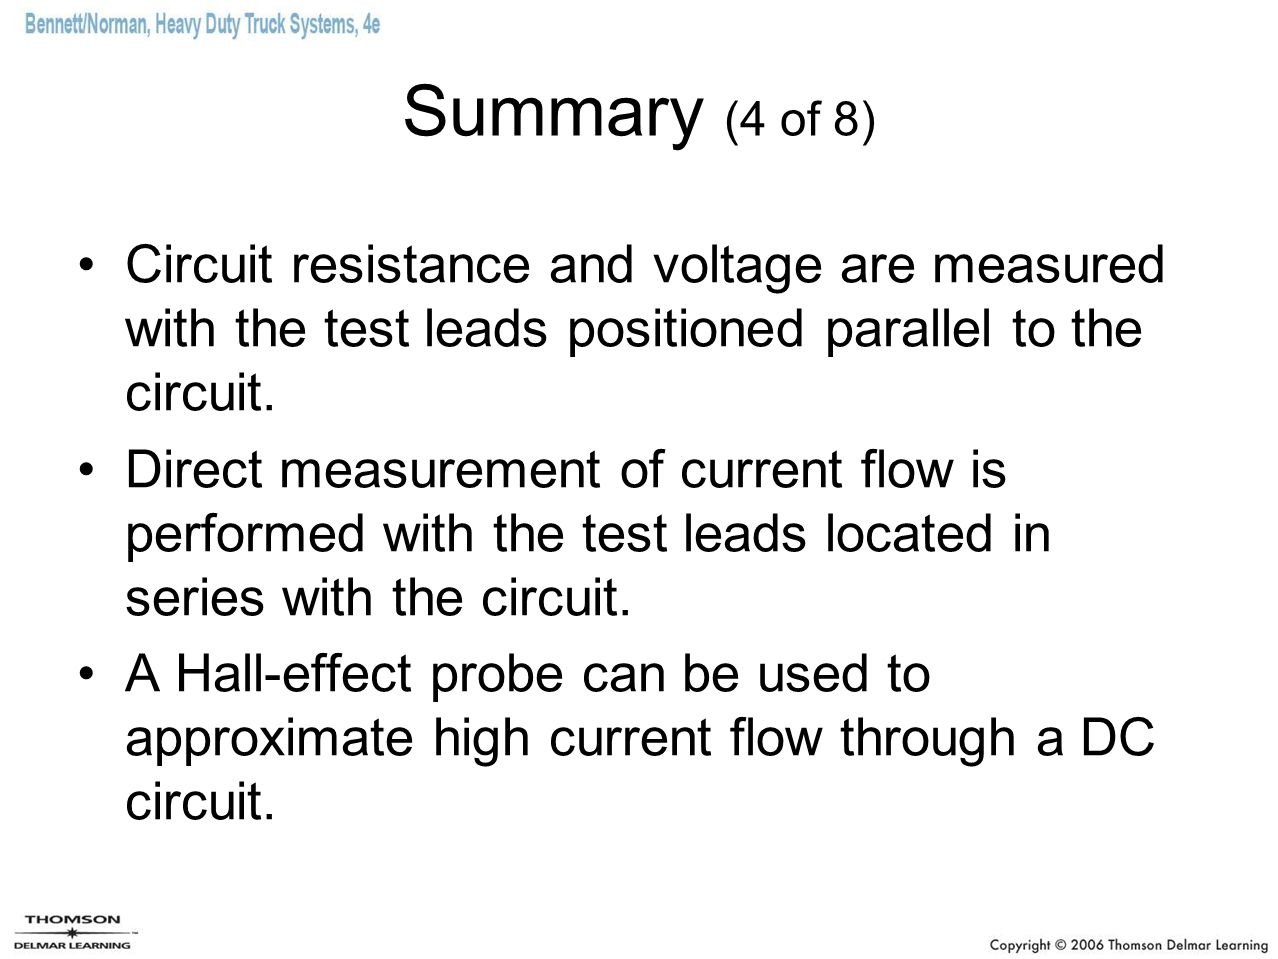 Summary (4 of 8) Circuit resistance and voltage are measured with the test leads positioned parallel to the circuit.